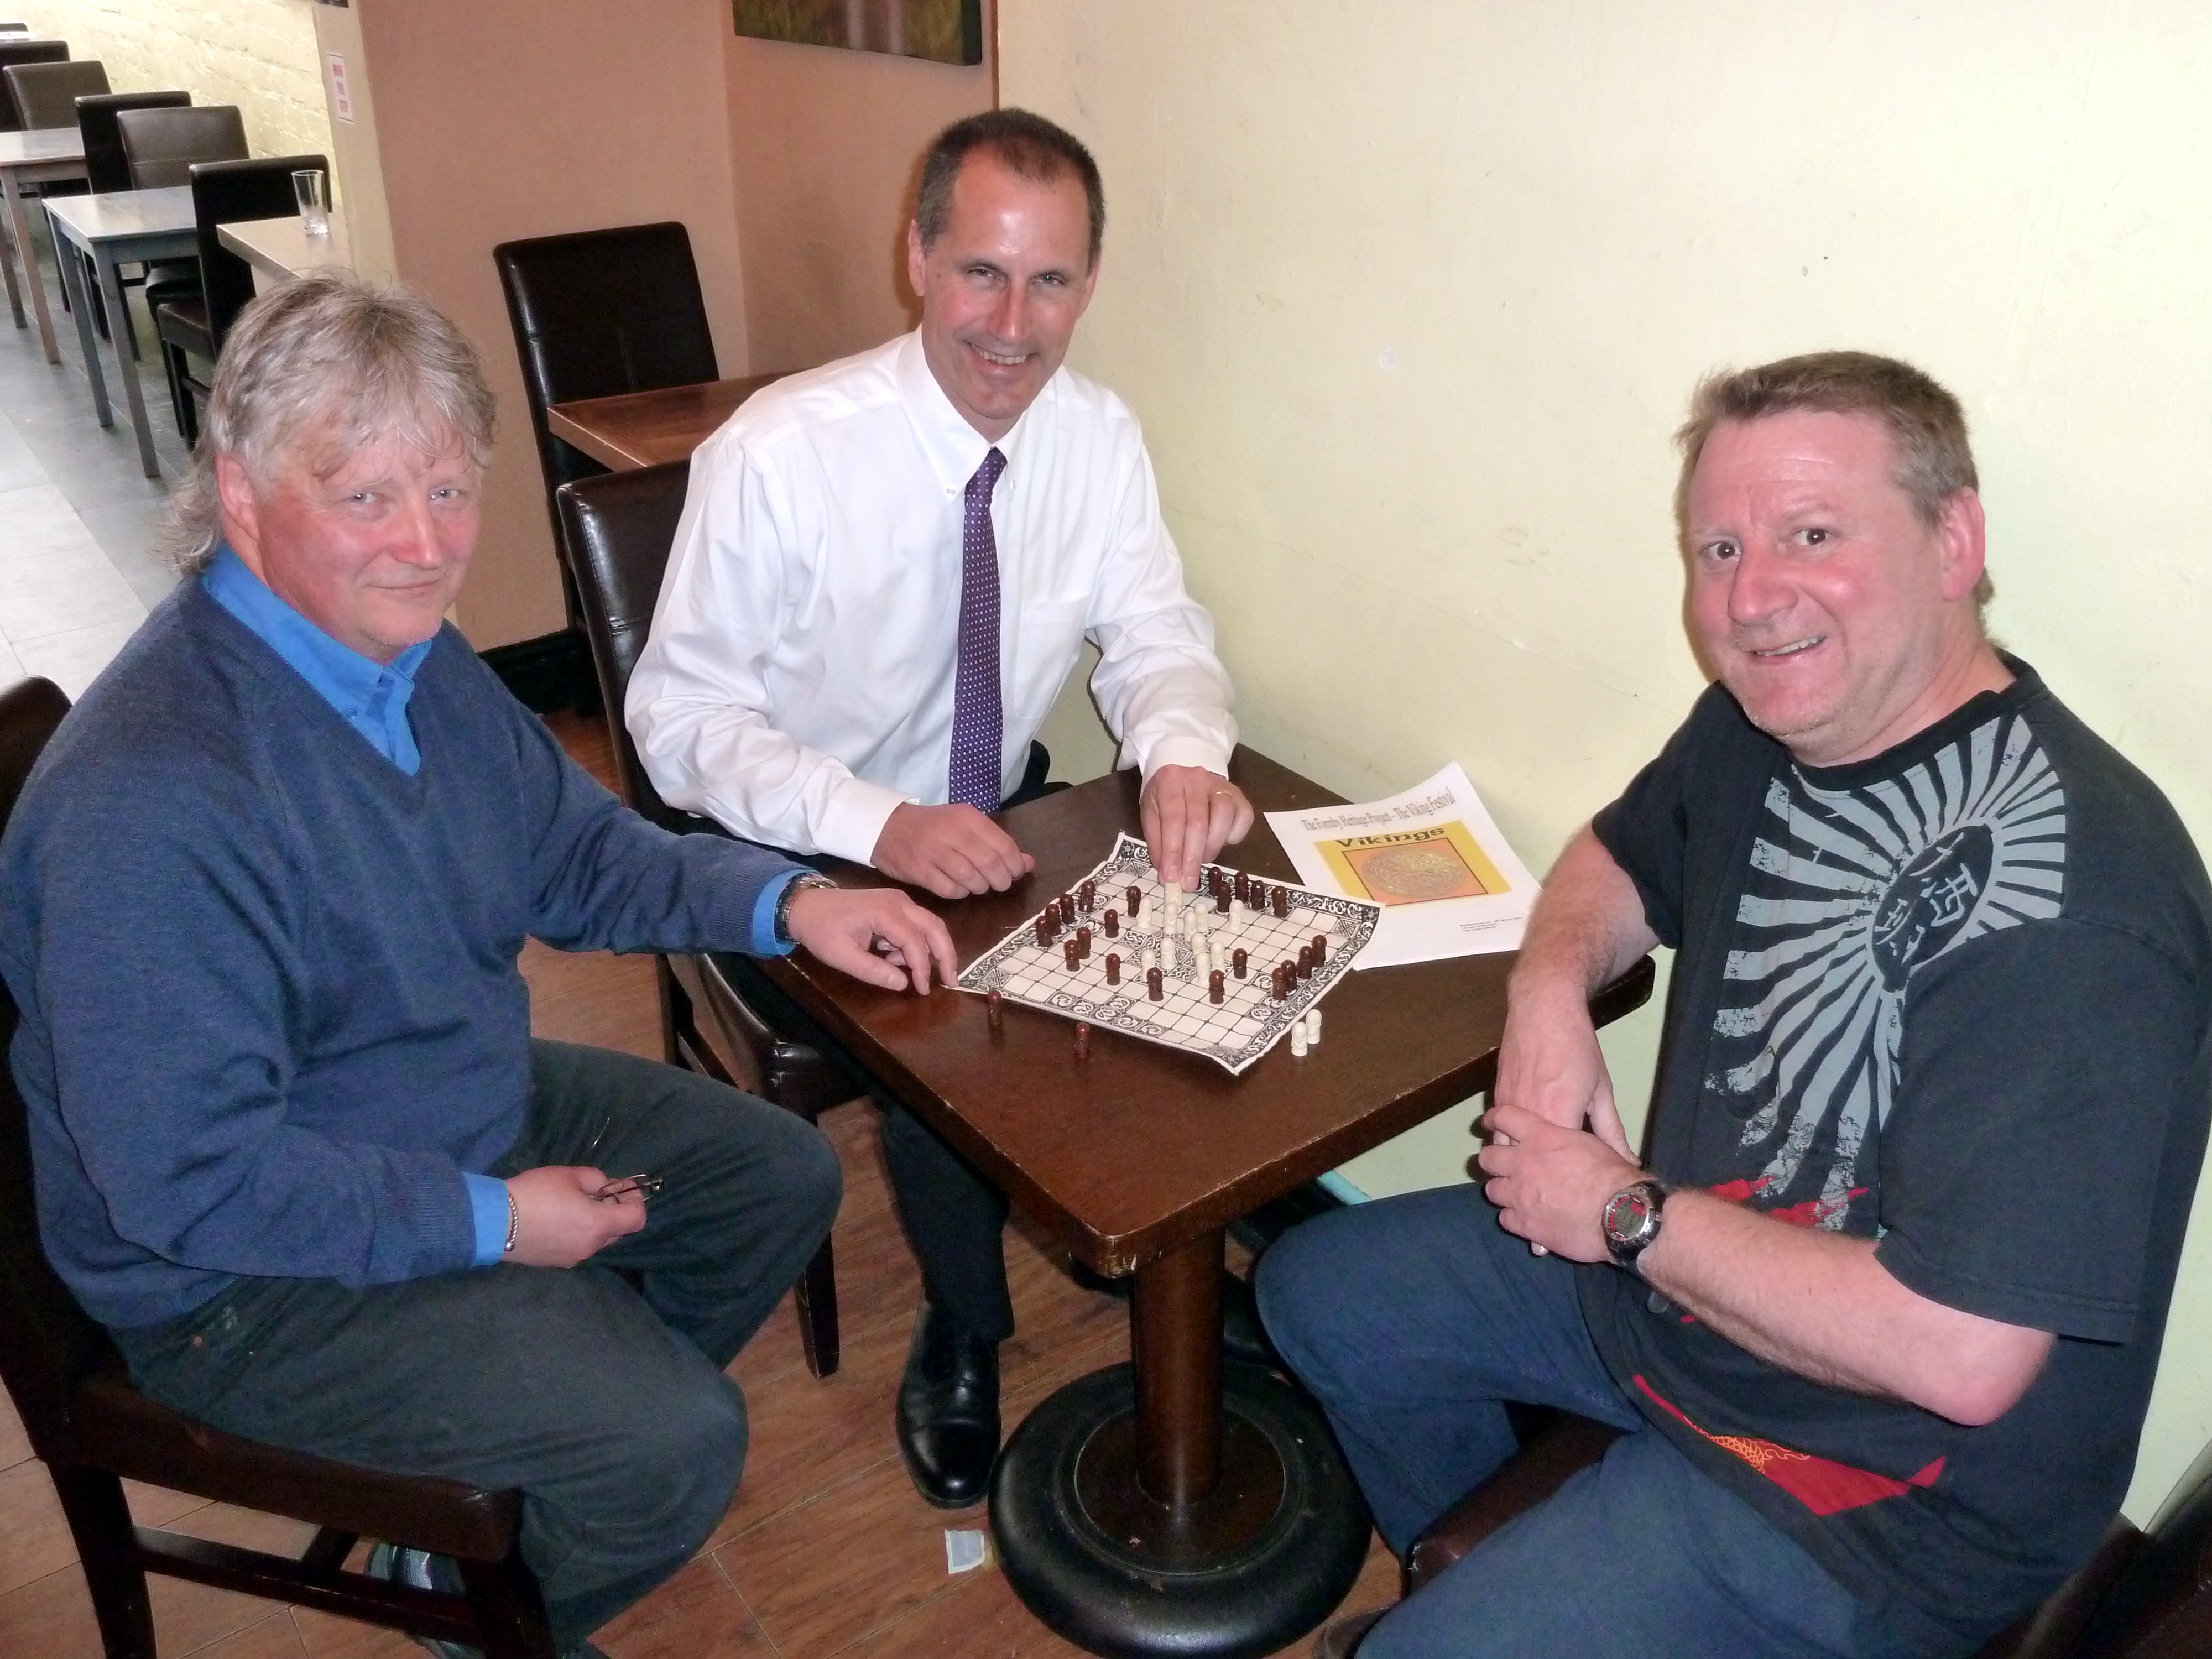 Sefton Central Labour MP Bill Esterson tries his hand at the Formby Viking Game with club founders Leo Kolassa and Tony Higginson.